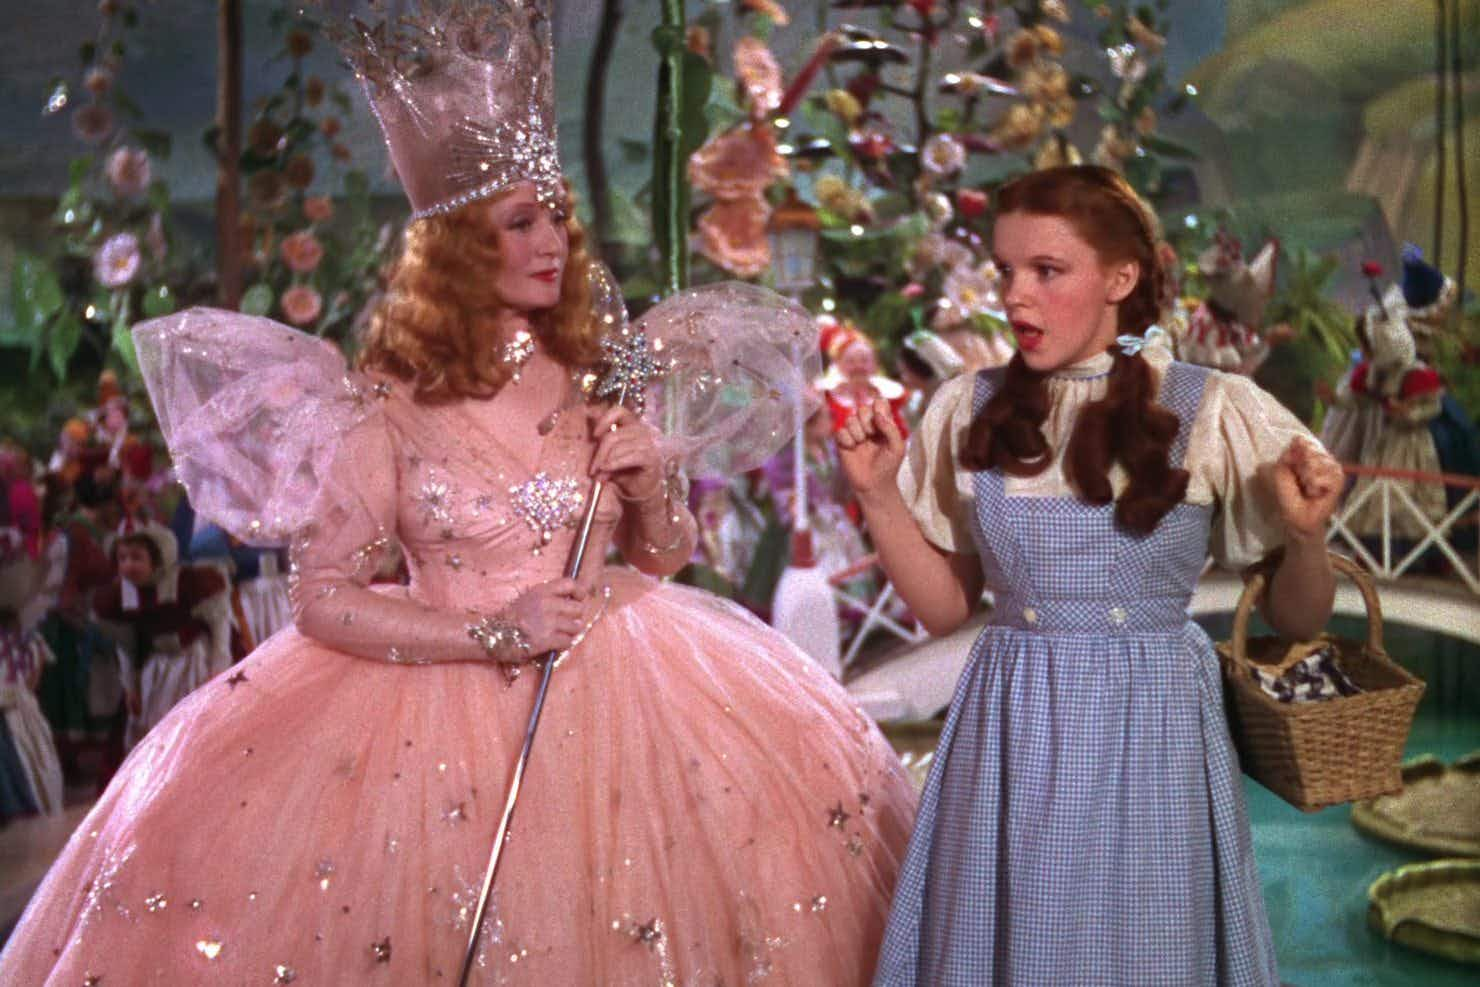 A Wizard of Oz-based theme park is opening this week in North Carolina